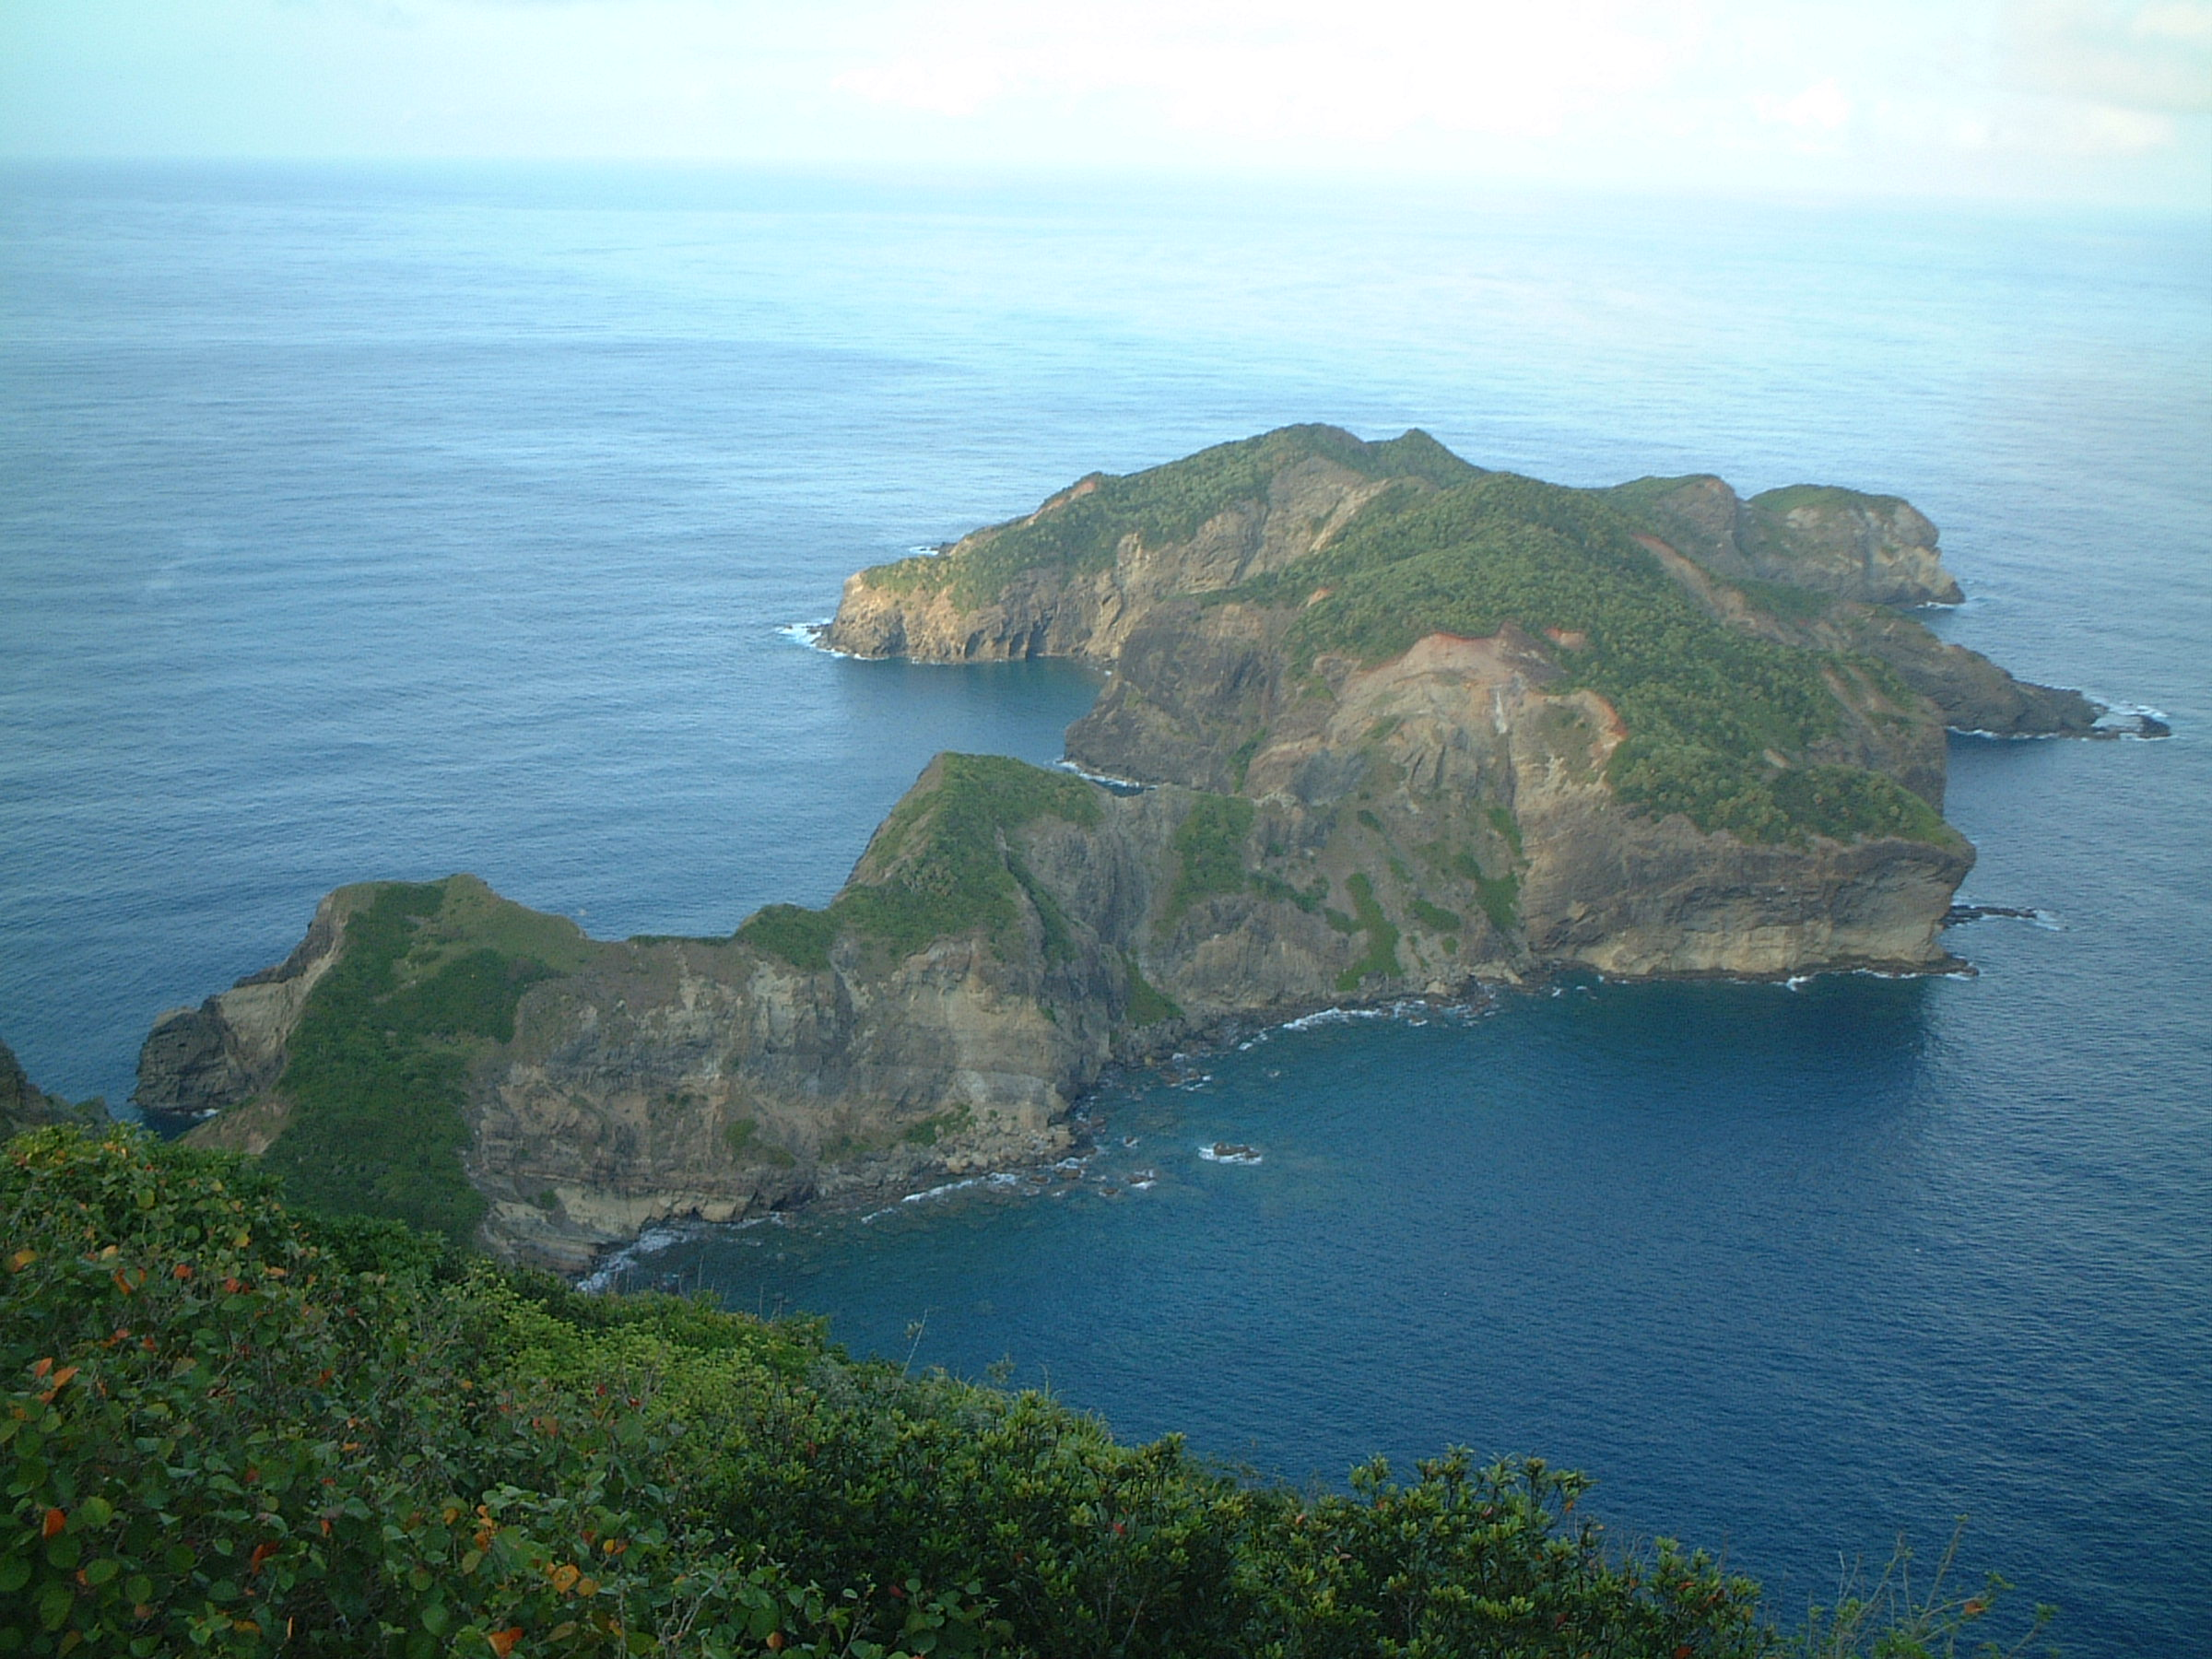 Lost world of Higashi-zaki peninsula